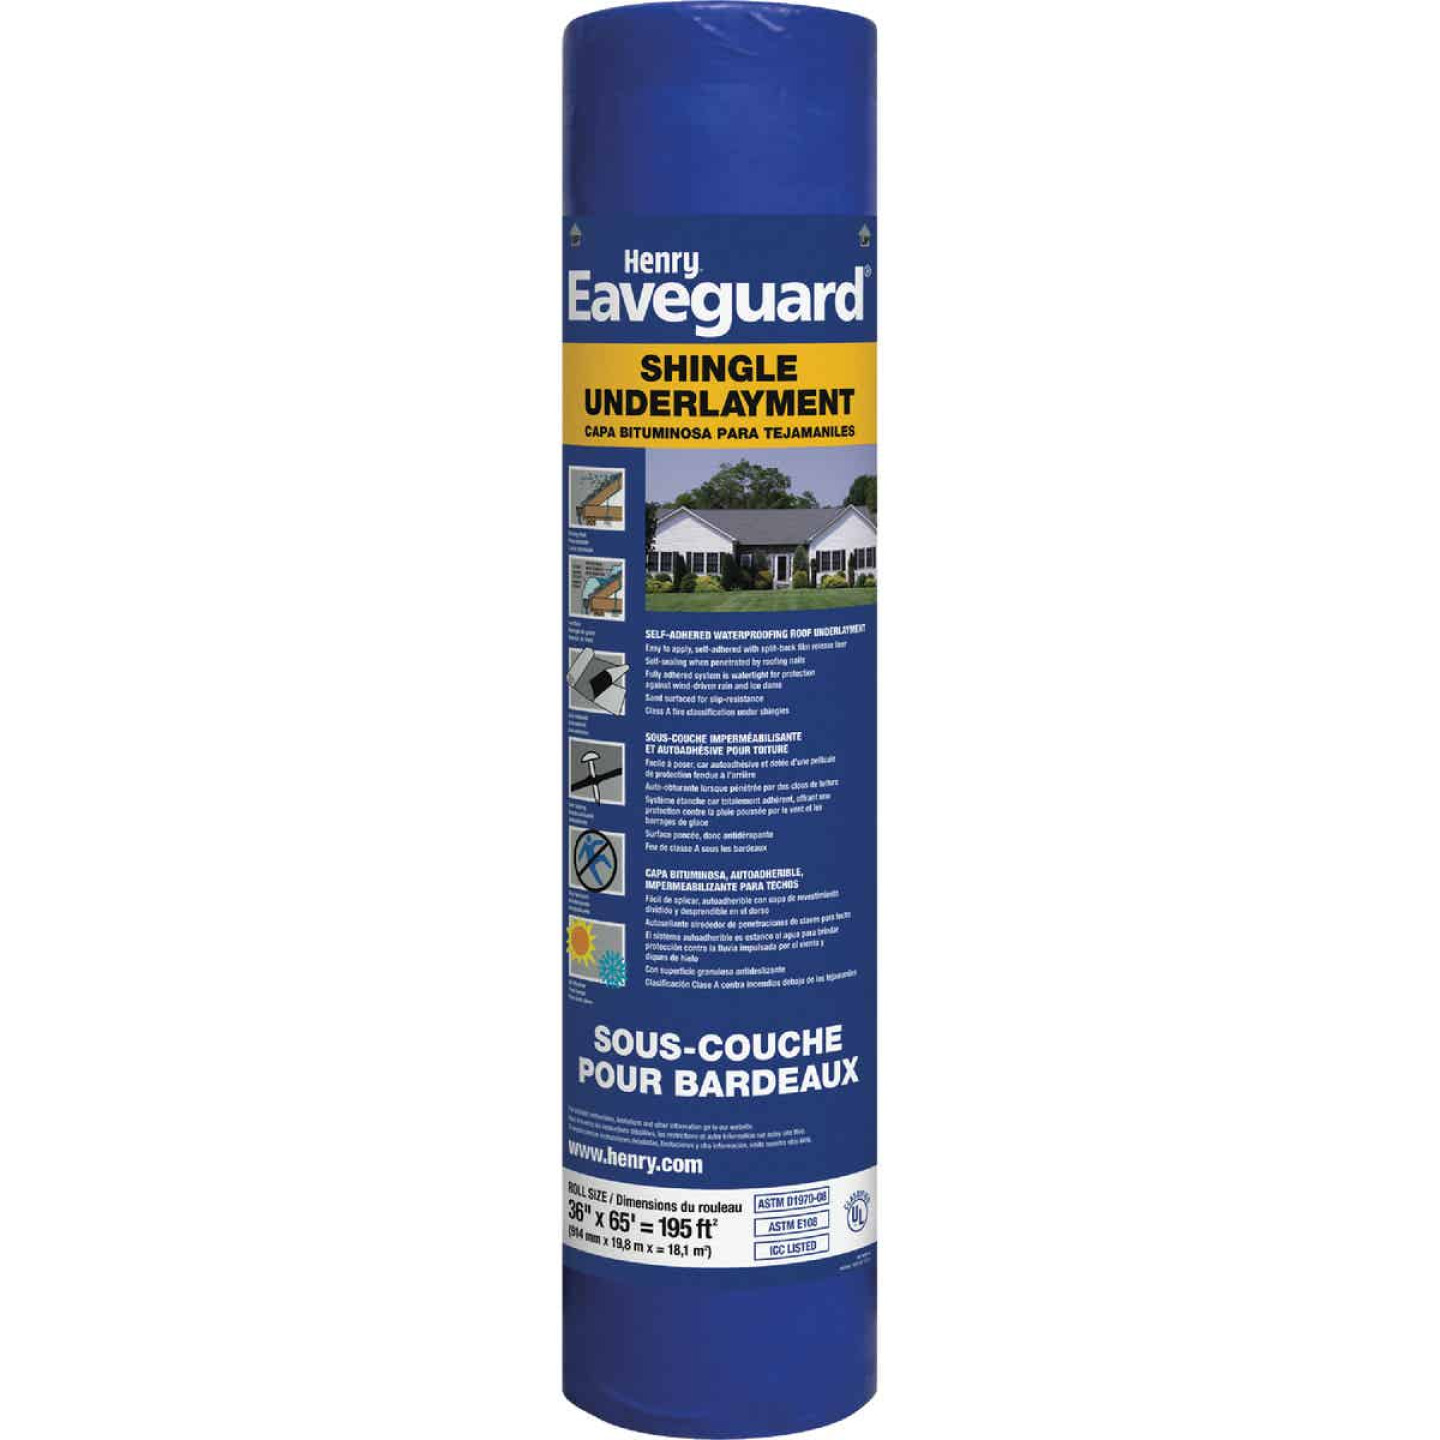 Henry Eaveguard 36 In. x 65 Ft. Shingle Underlayment Image 1